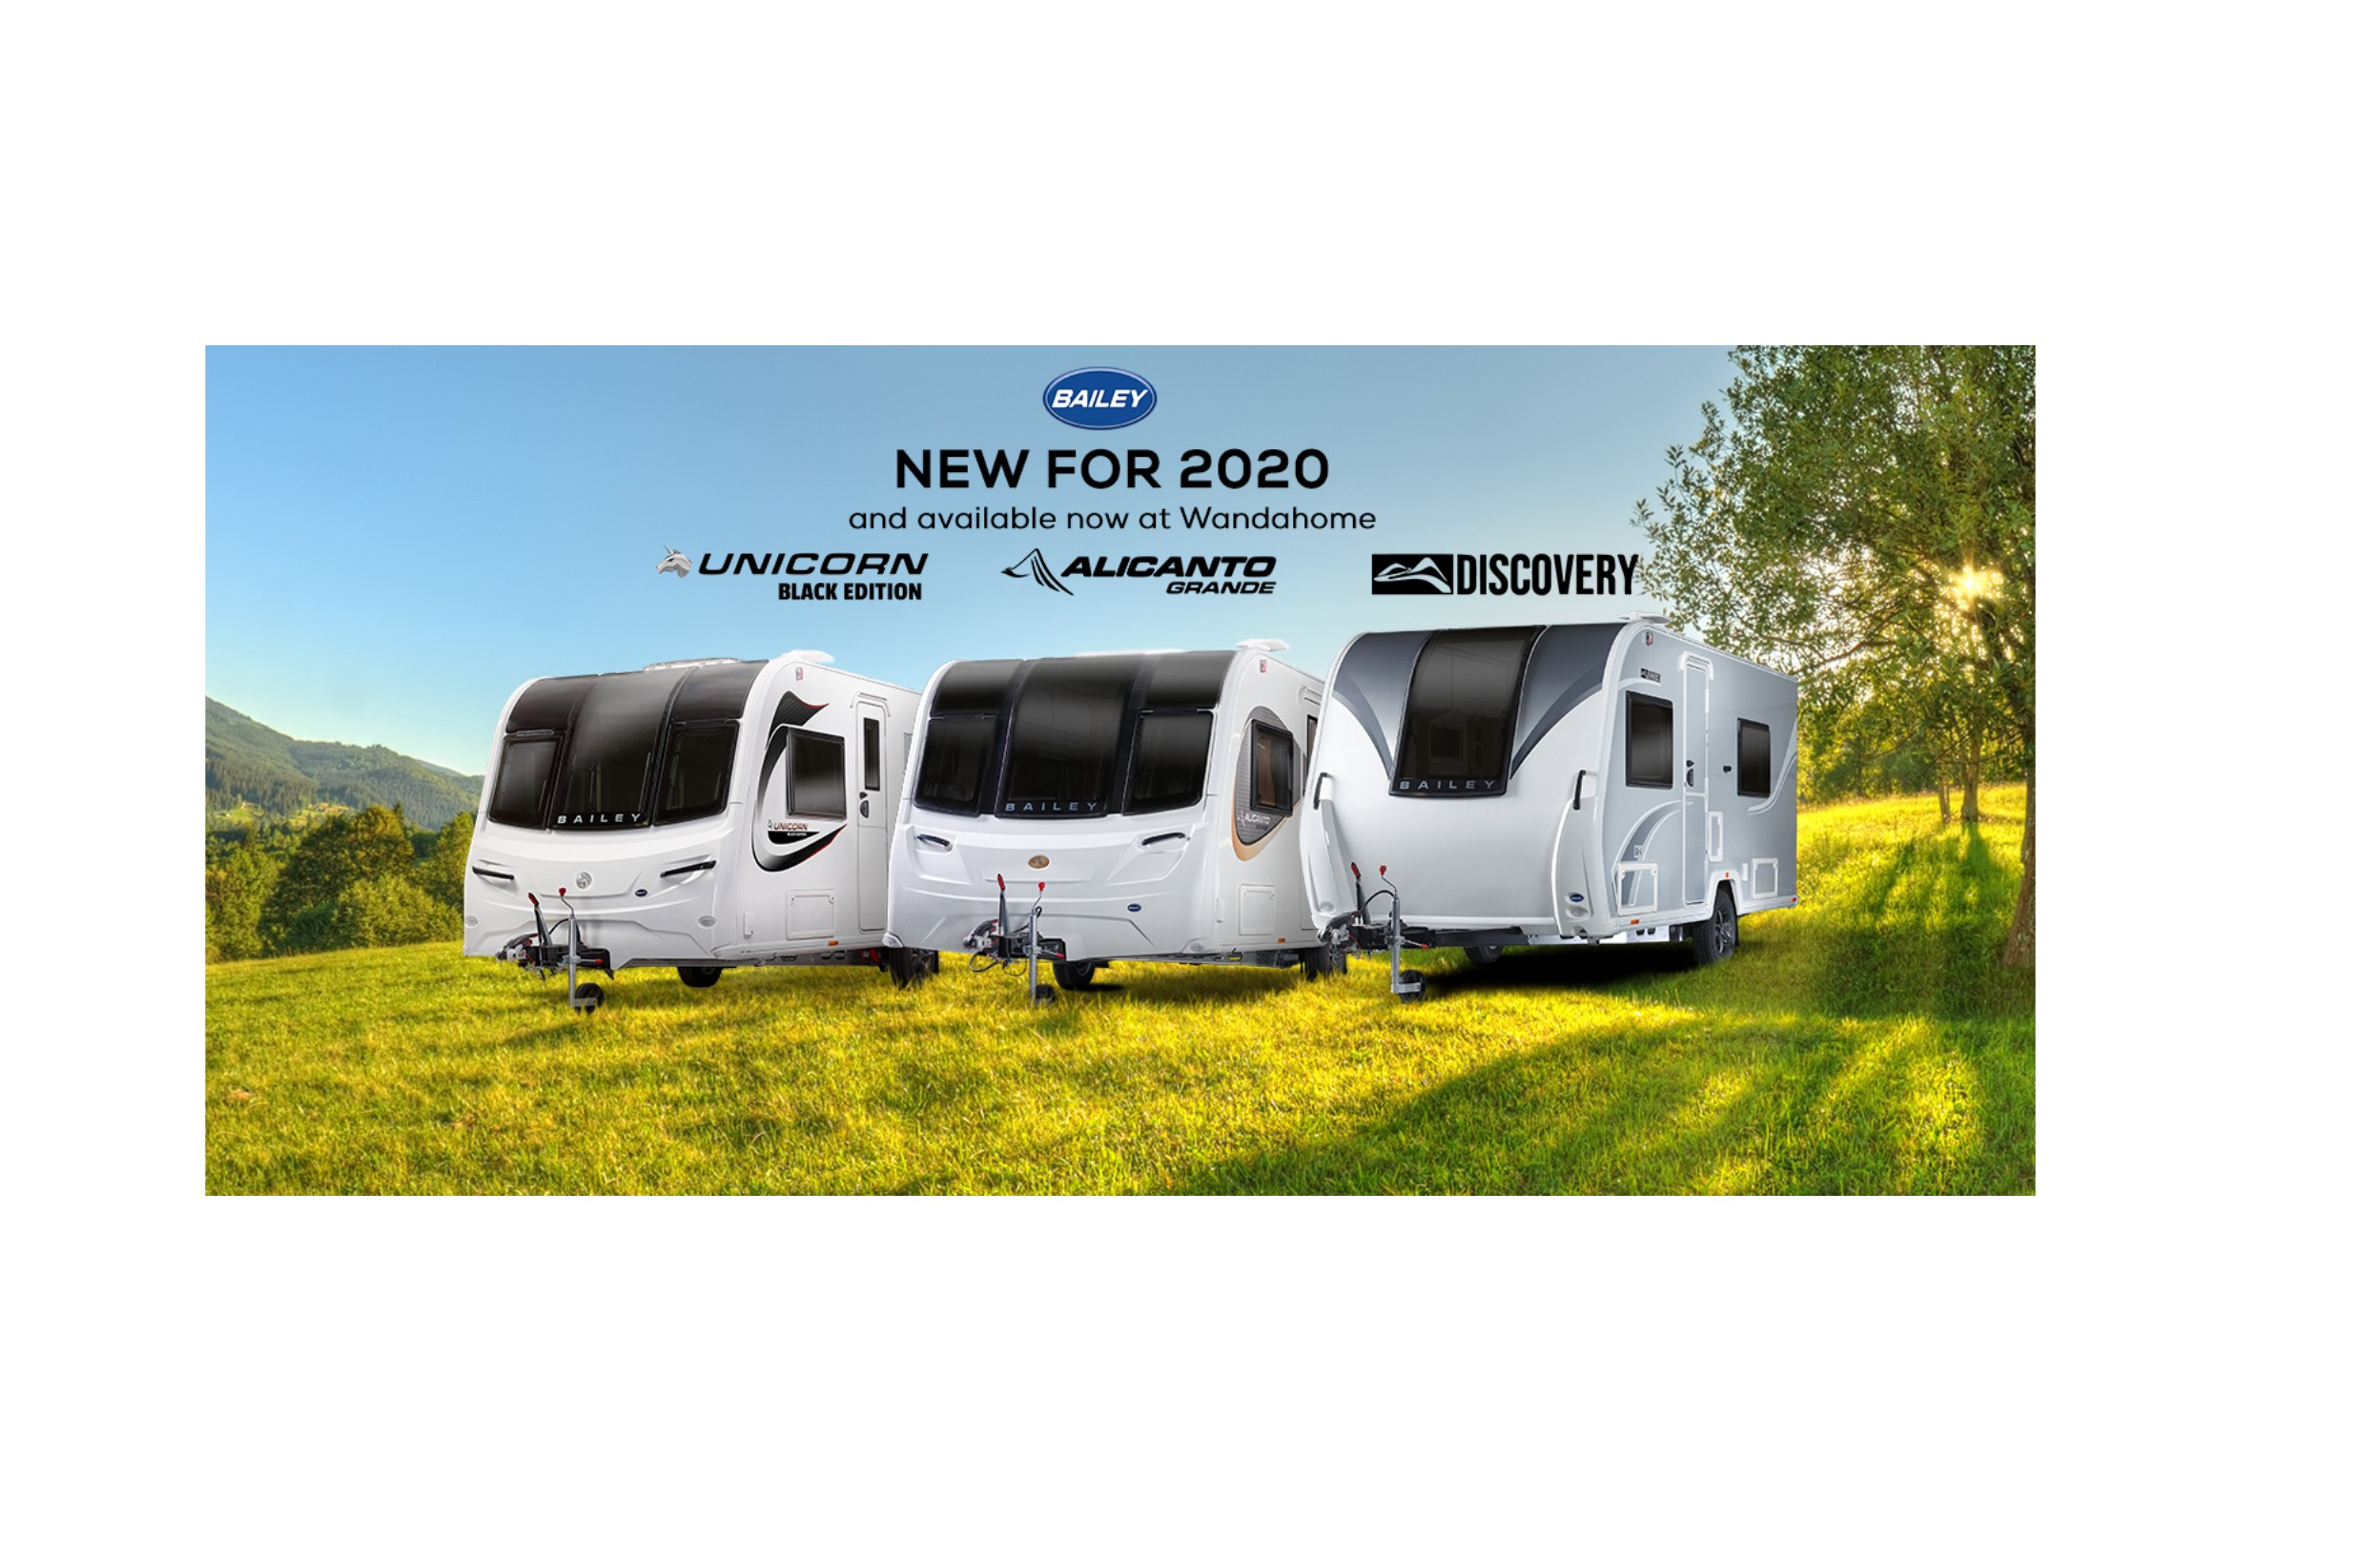 2020 Bailey Caravan Sale